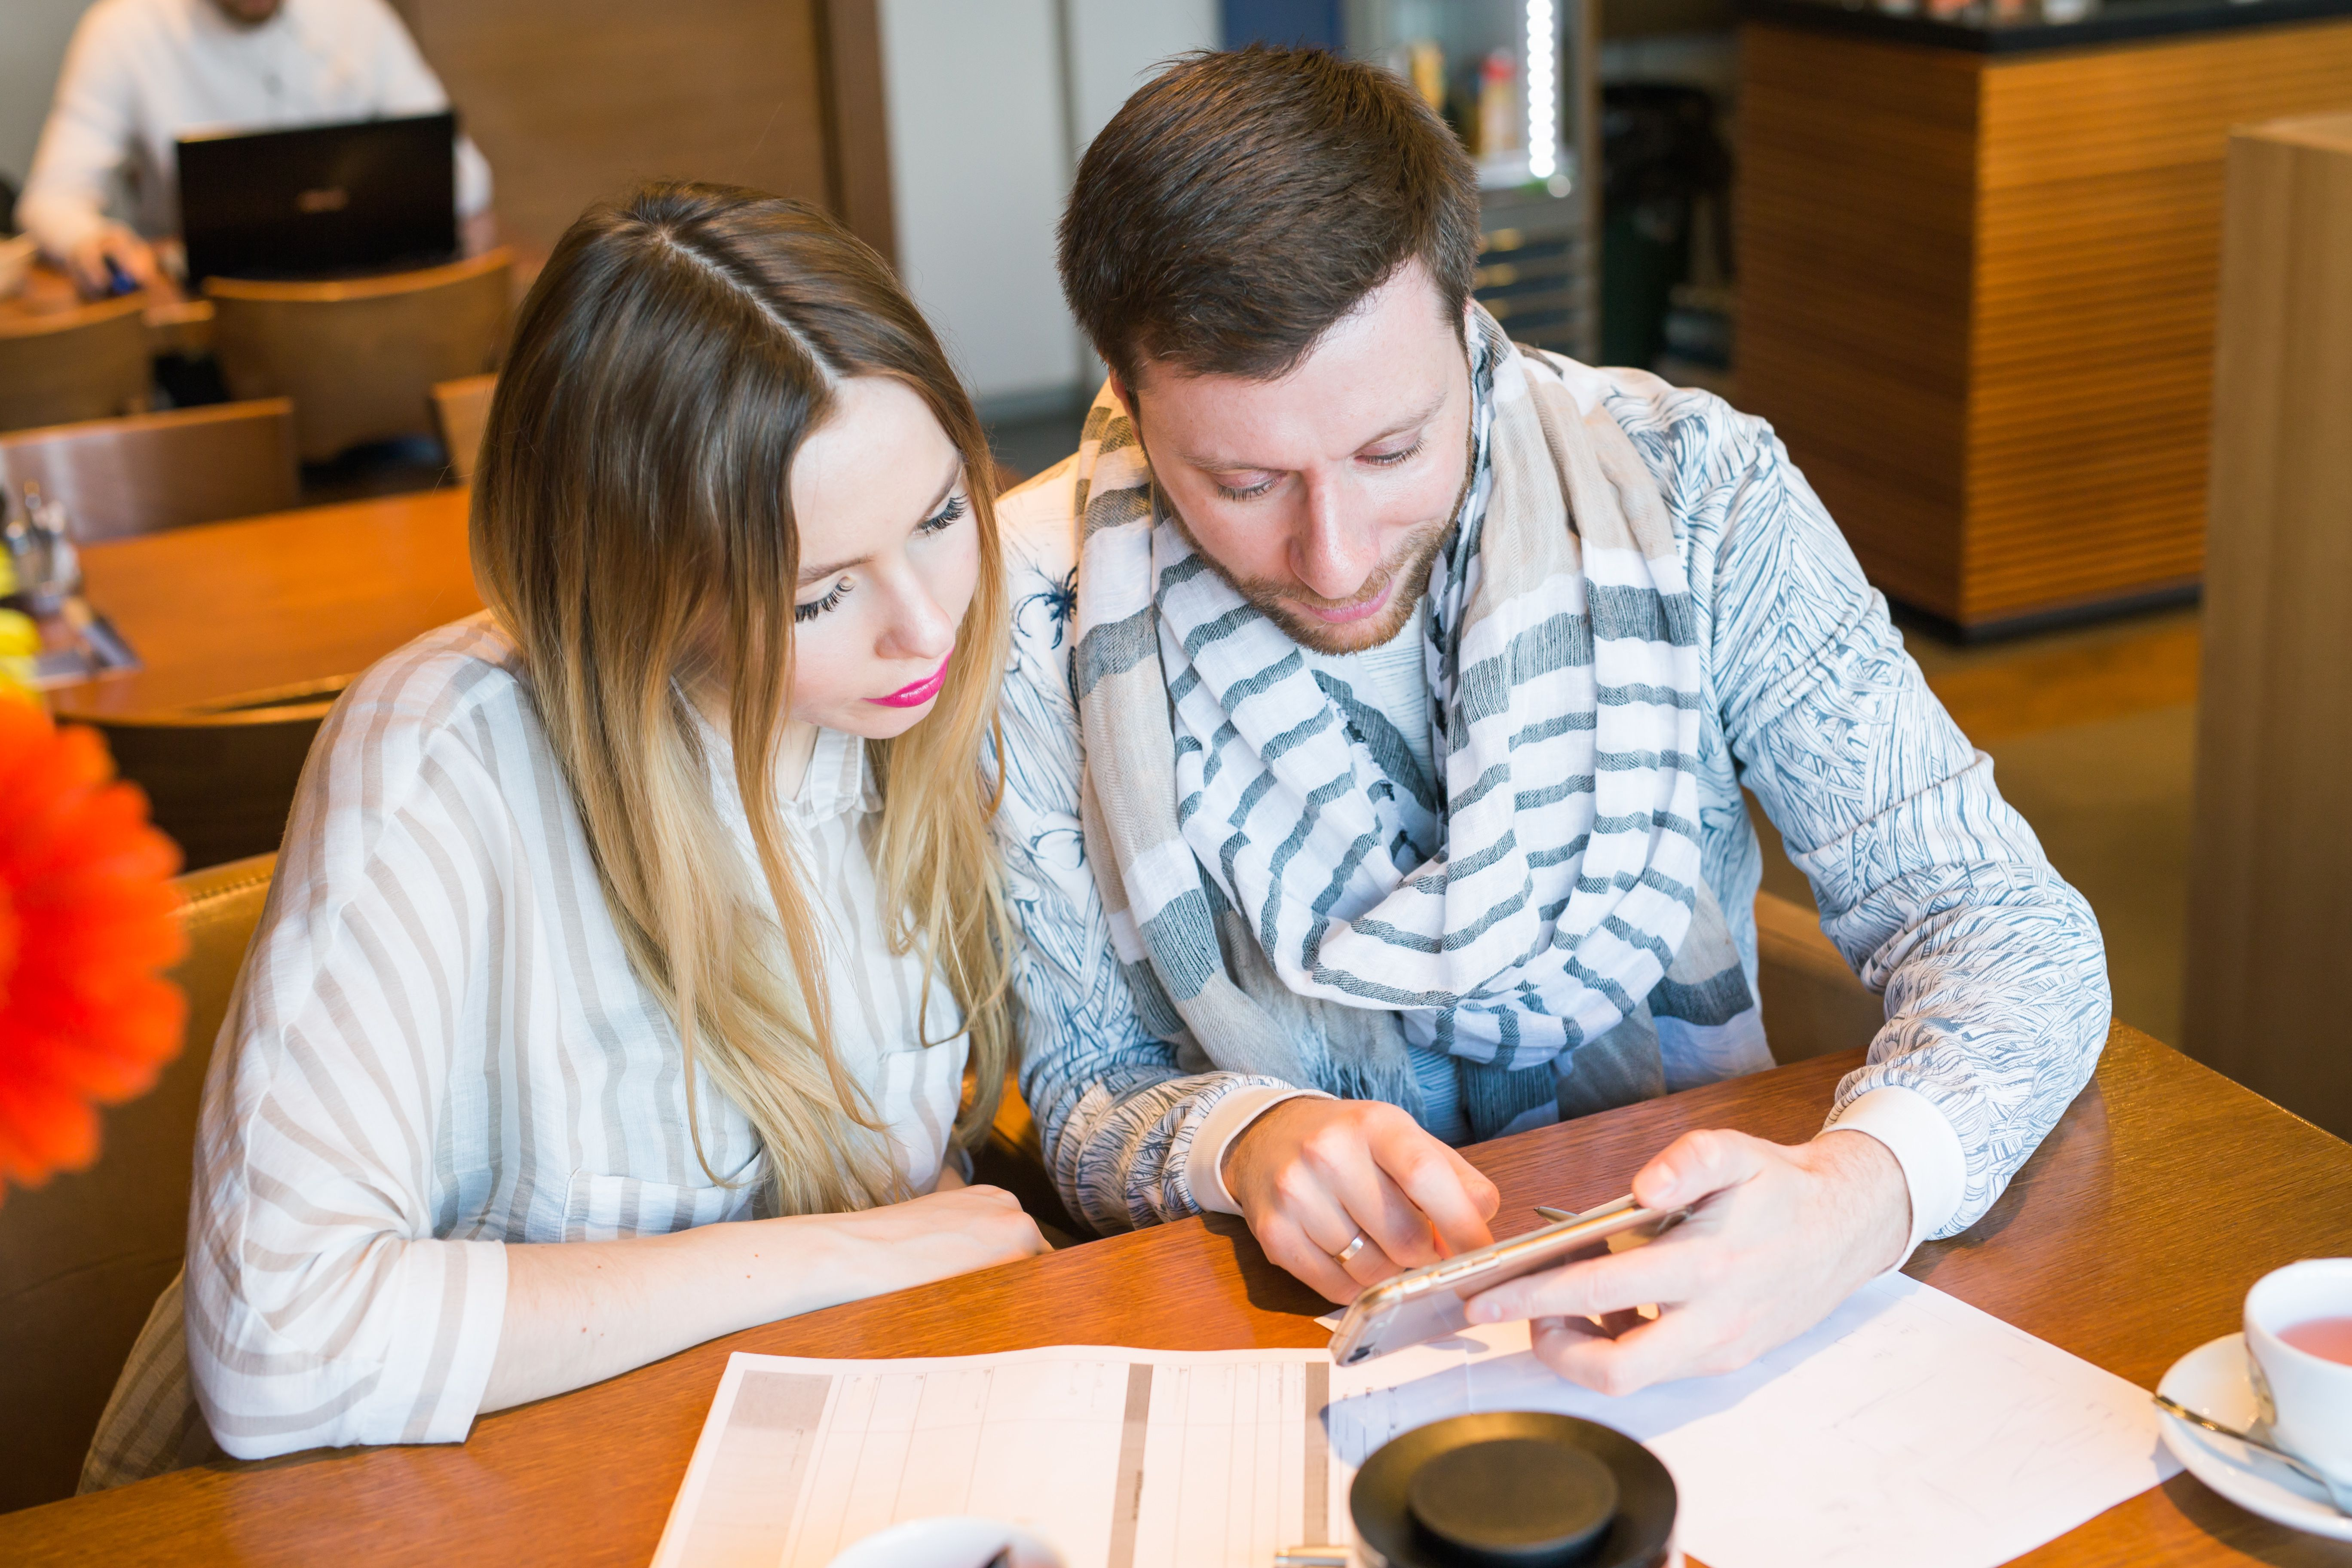 A man and a woman looking at a phone with documents and a coffee cup on their table